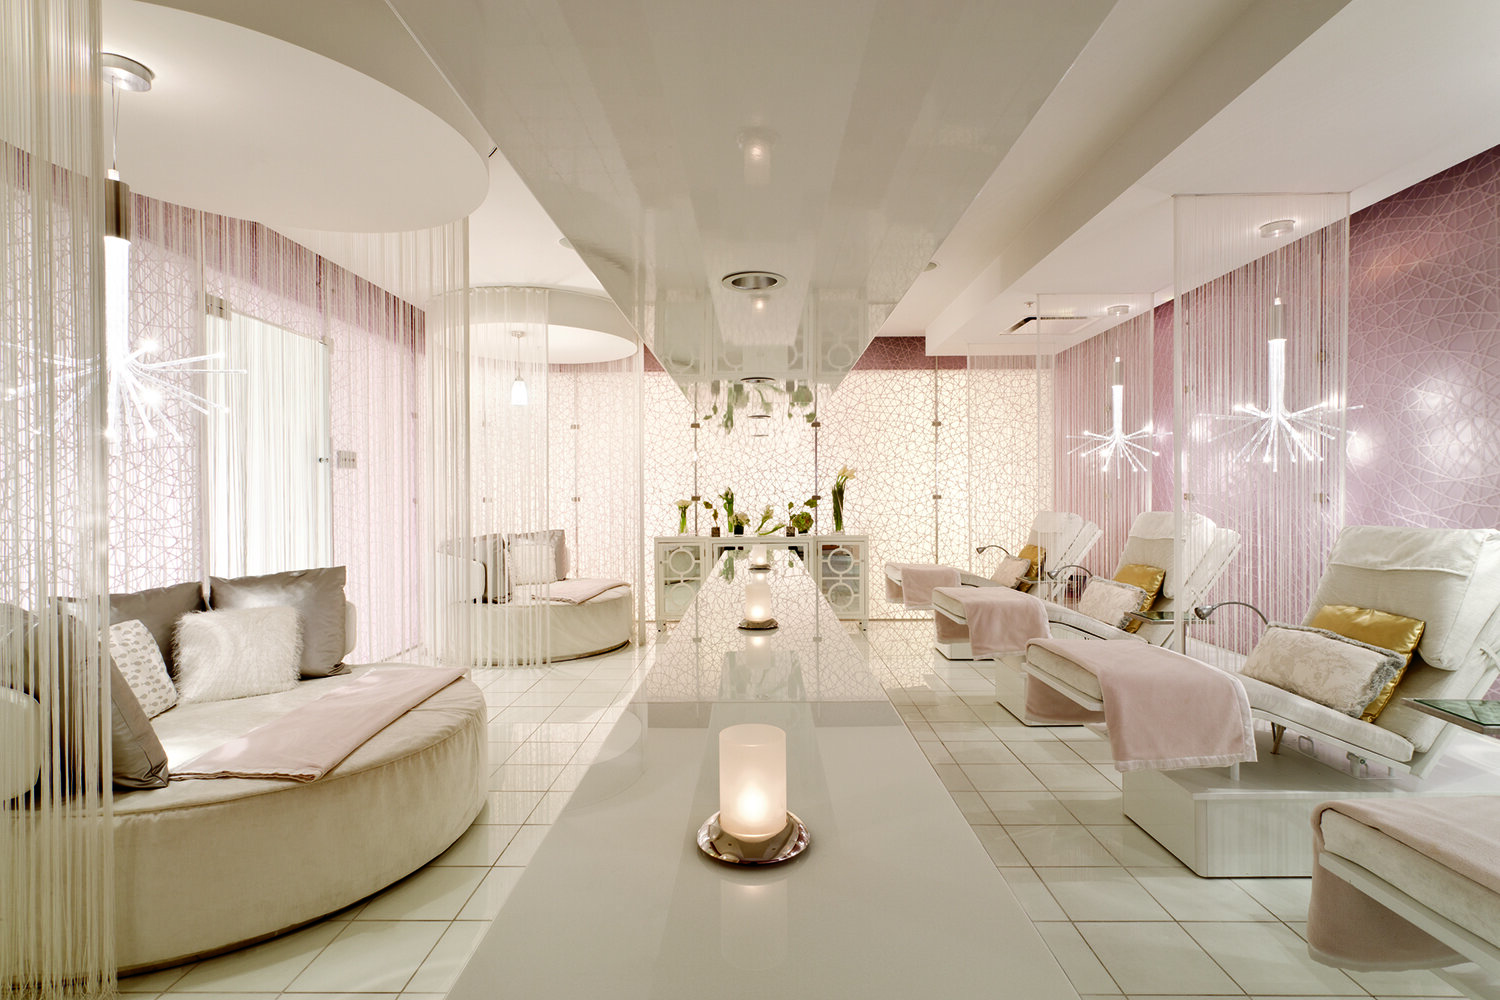 The Ritz-Carlton Spa, Los Angeles is an 8,000 square-foot wellness sanctuary.